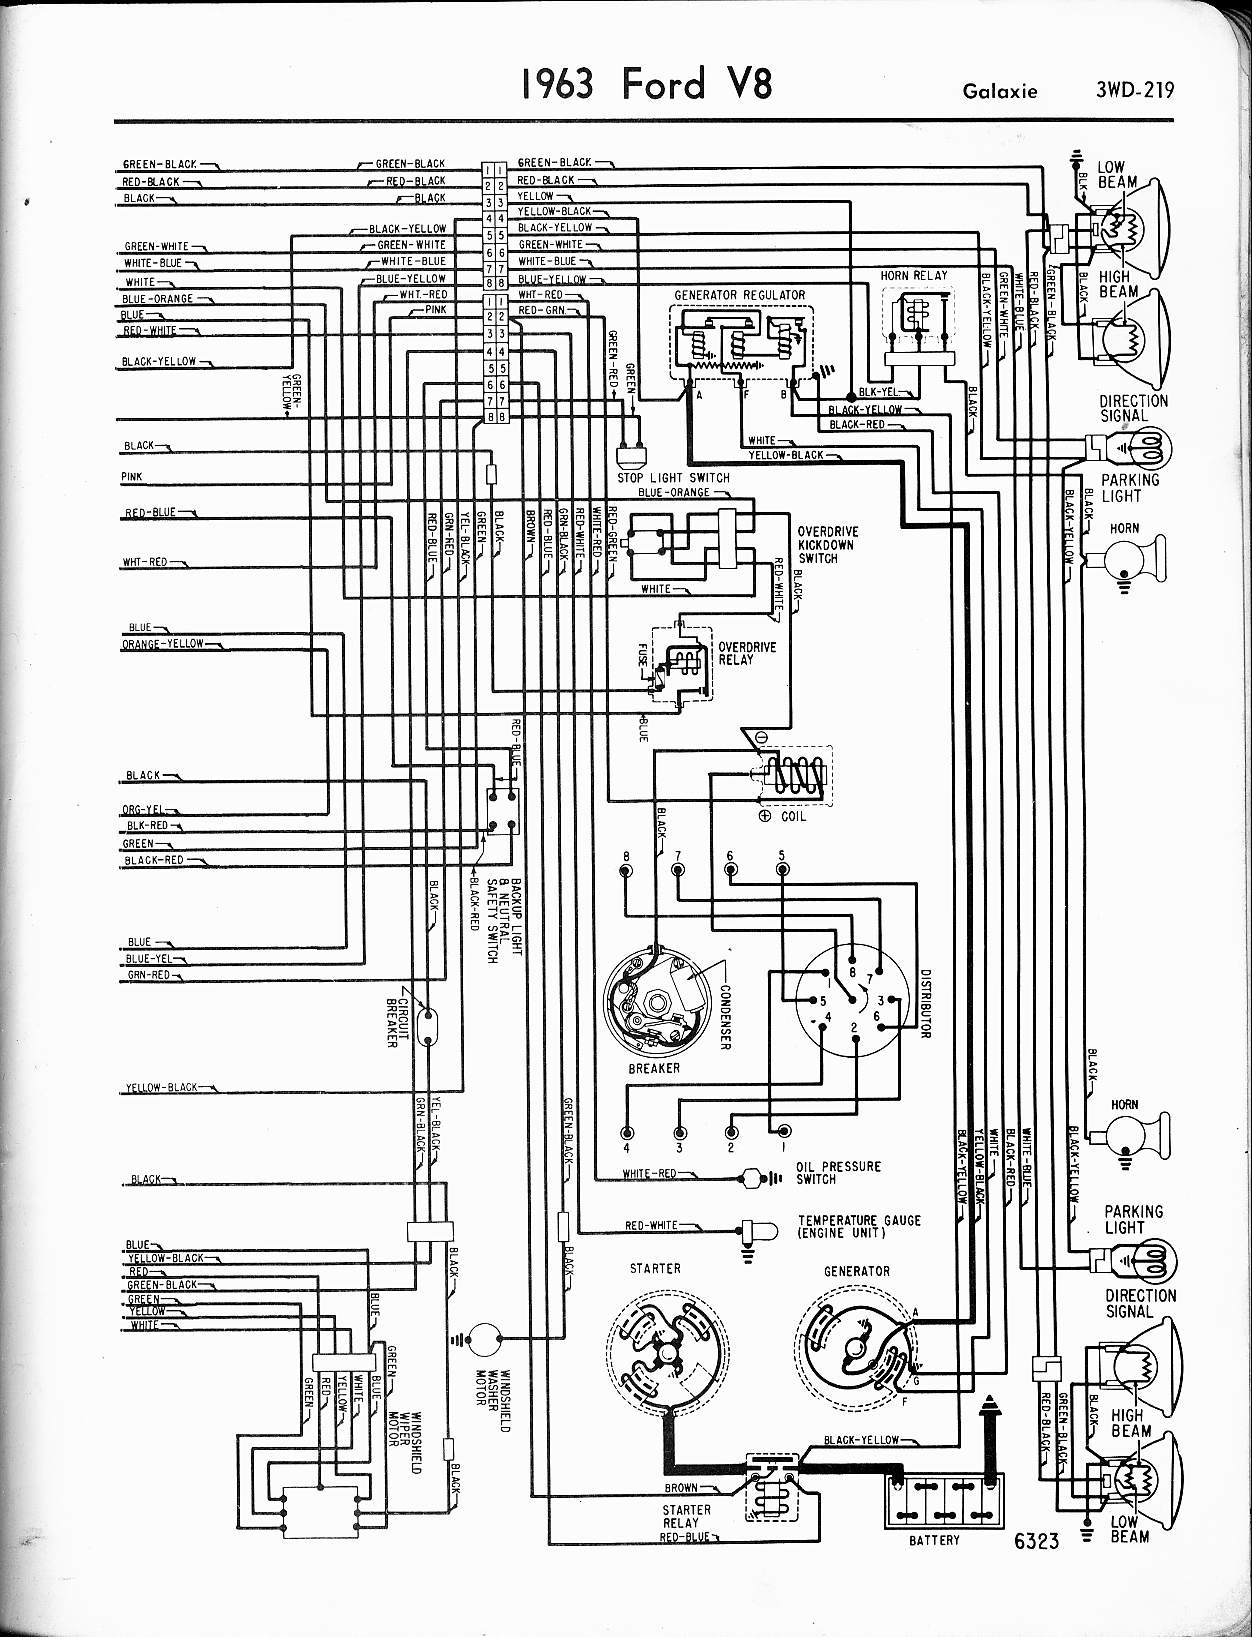 1963 ford galaxie wiring diagram charging